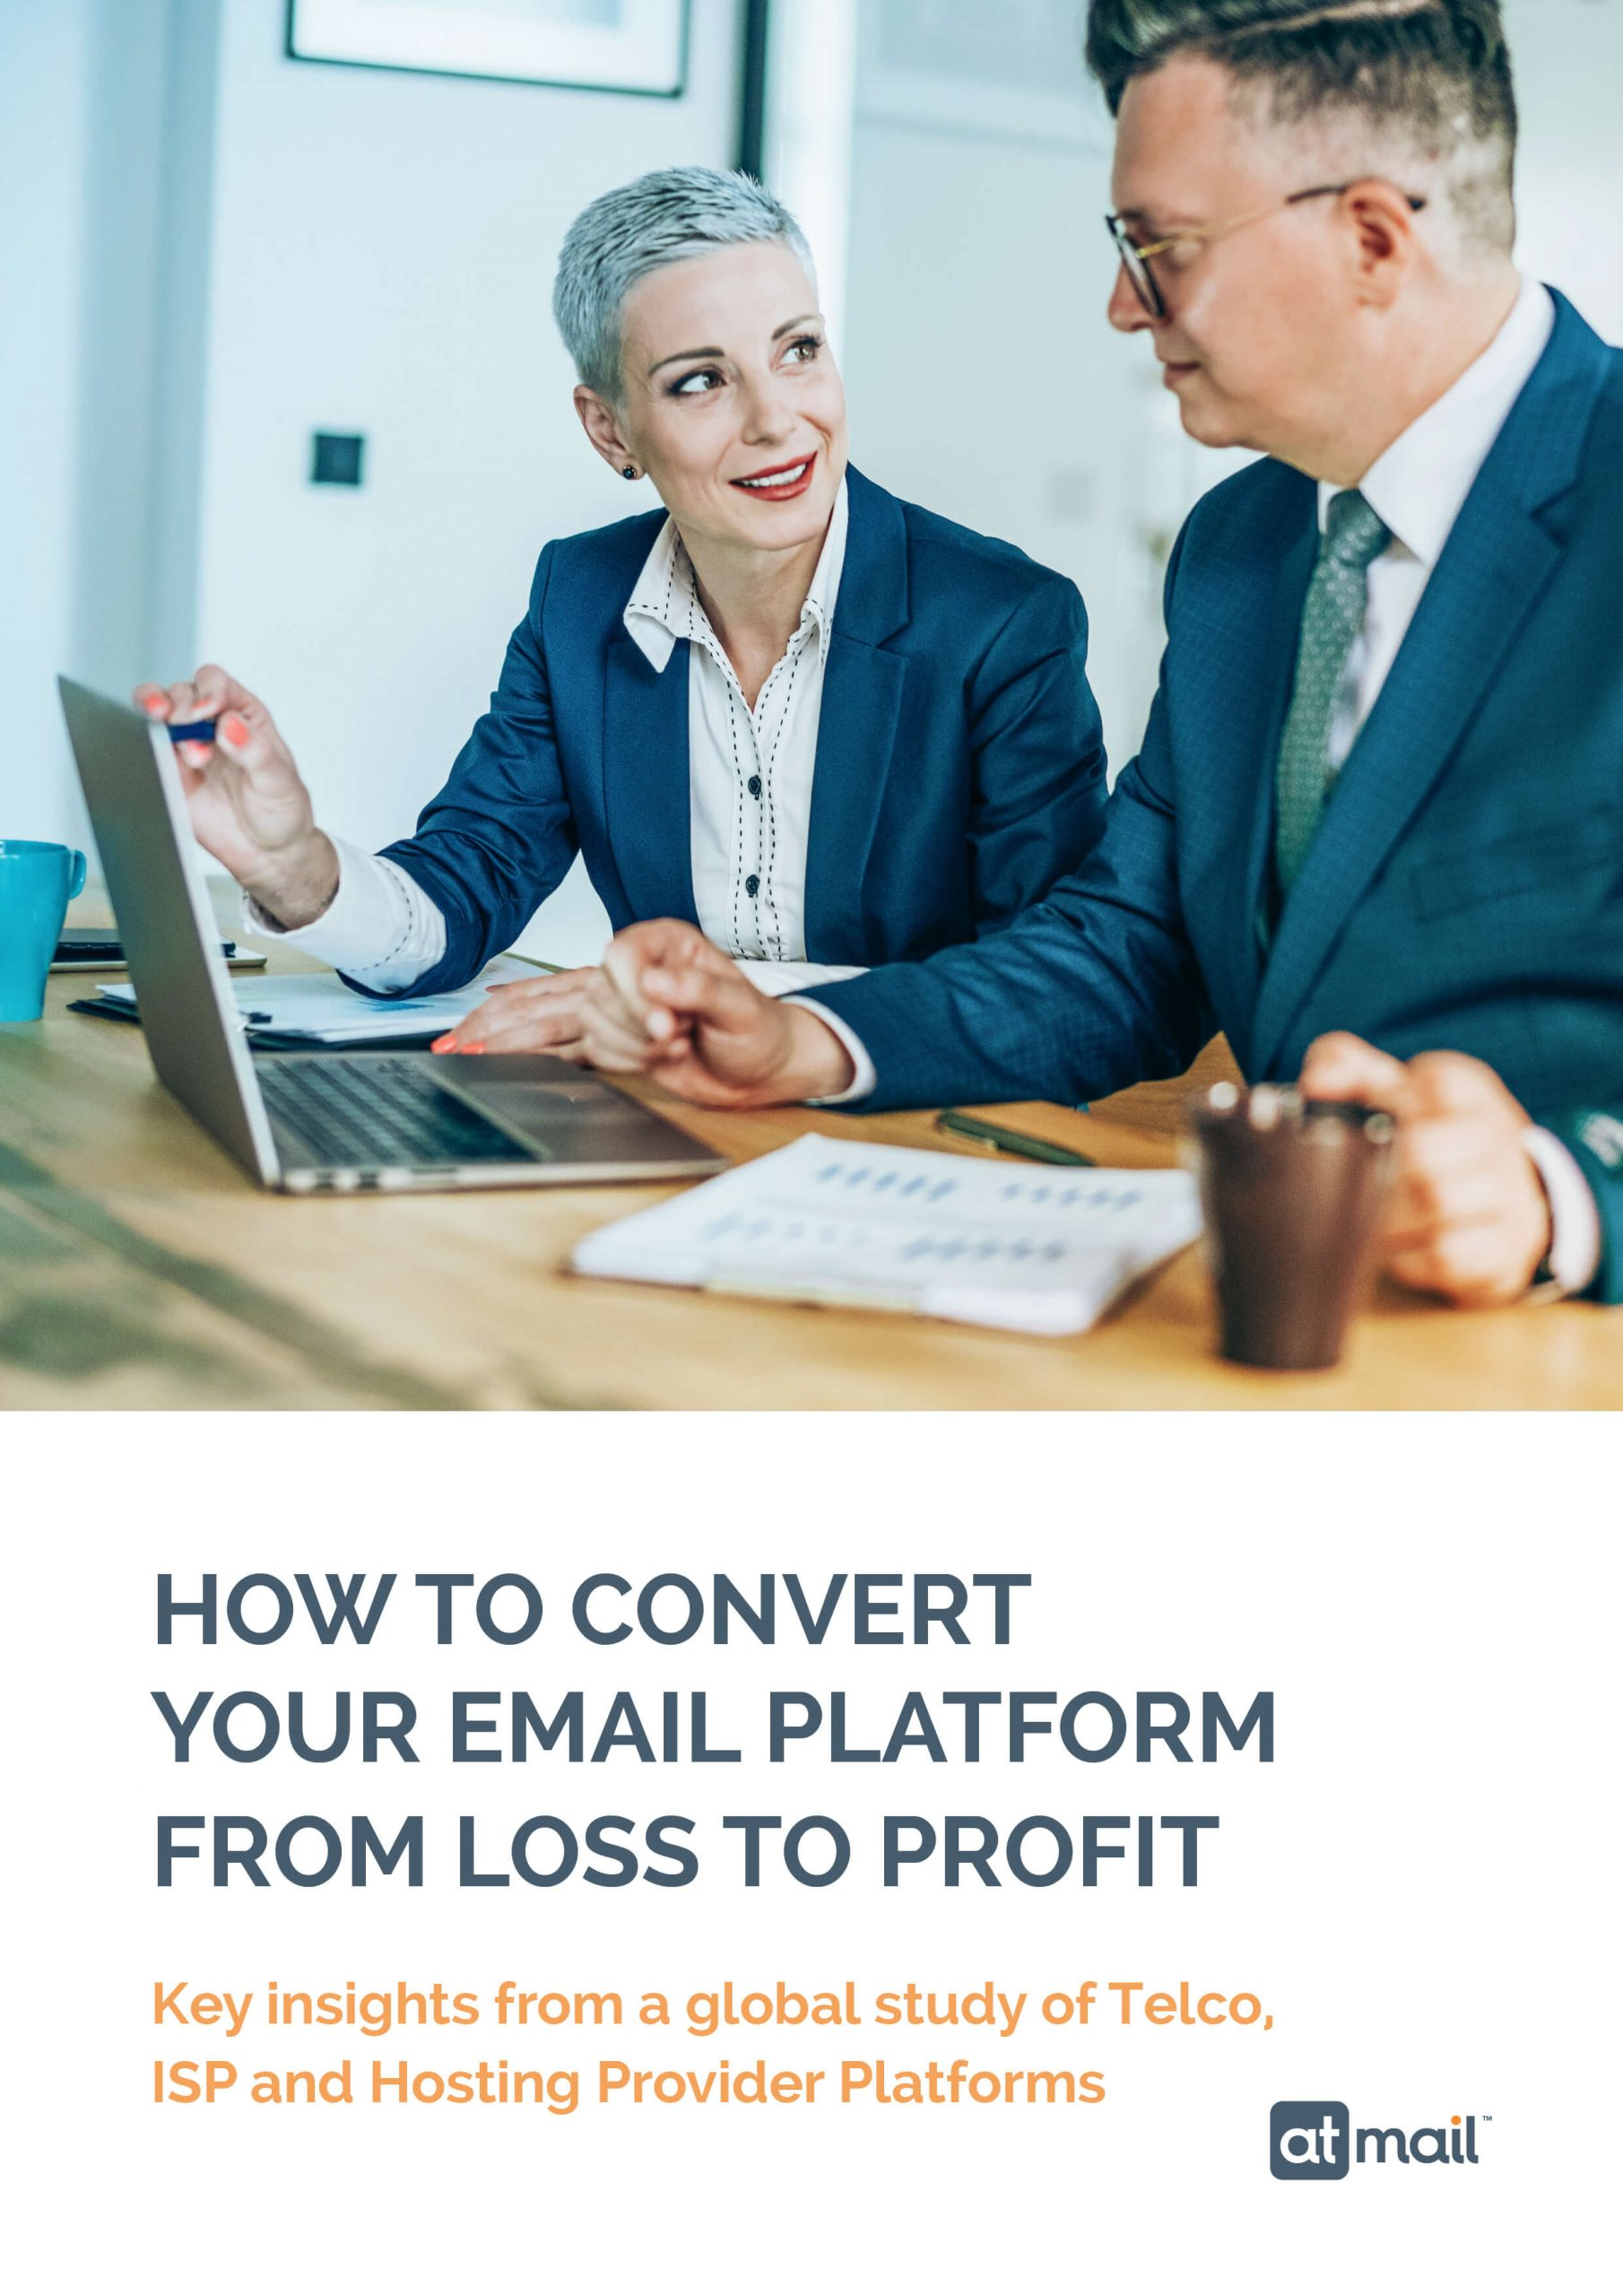 How to Convert Your Email Platform from Loss to Profit - Copyright atmail - email hosting experts